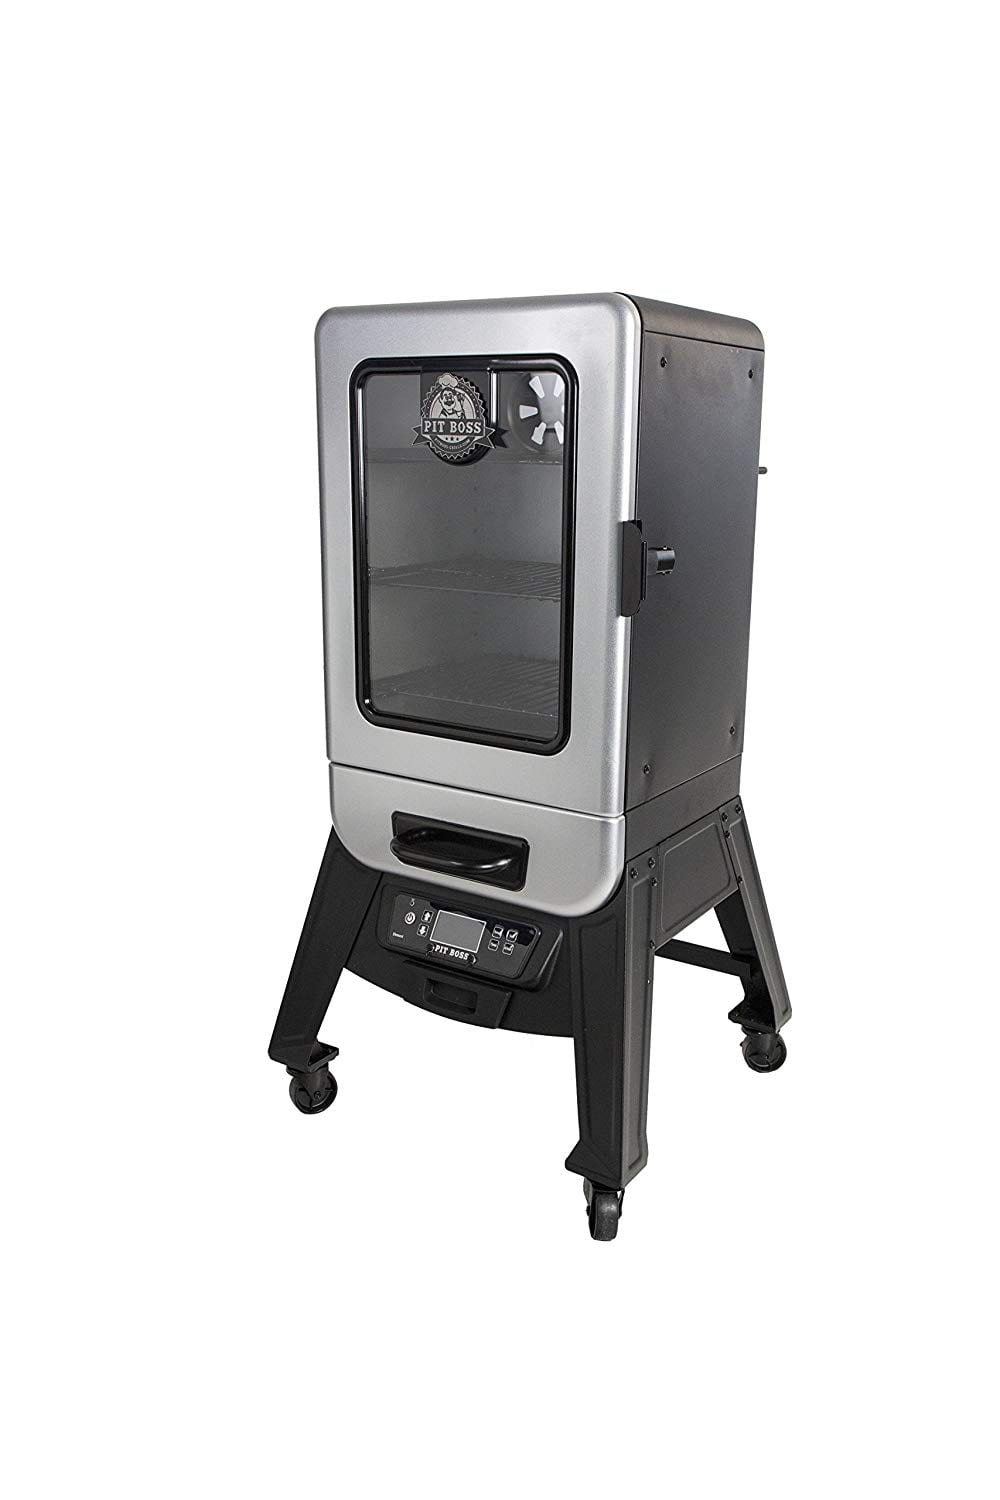 Pit Boss Grills 77221 Digital Electric Smoker